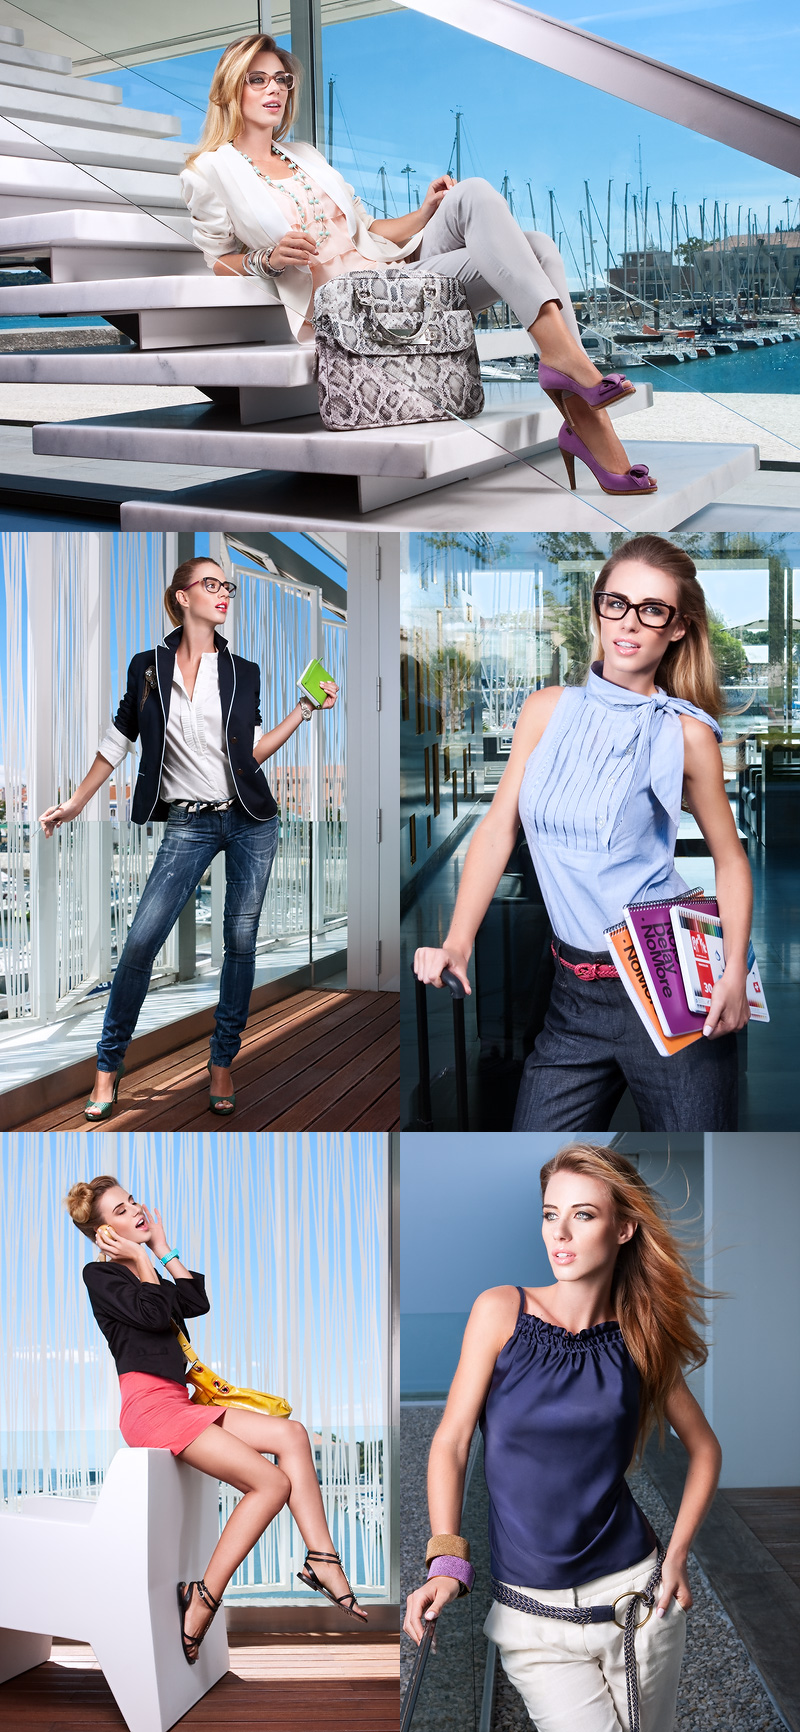 Aug 10, 2010 Photographed by Luis Eca Cosmopolitan August - Dressed for Work (see larger images http://www.behance.net/gallery/Fashion-Editorial-for-Cosmopolitan-Portugal/574167)